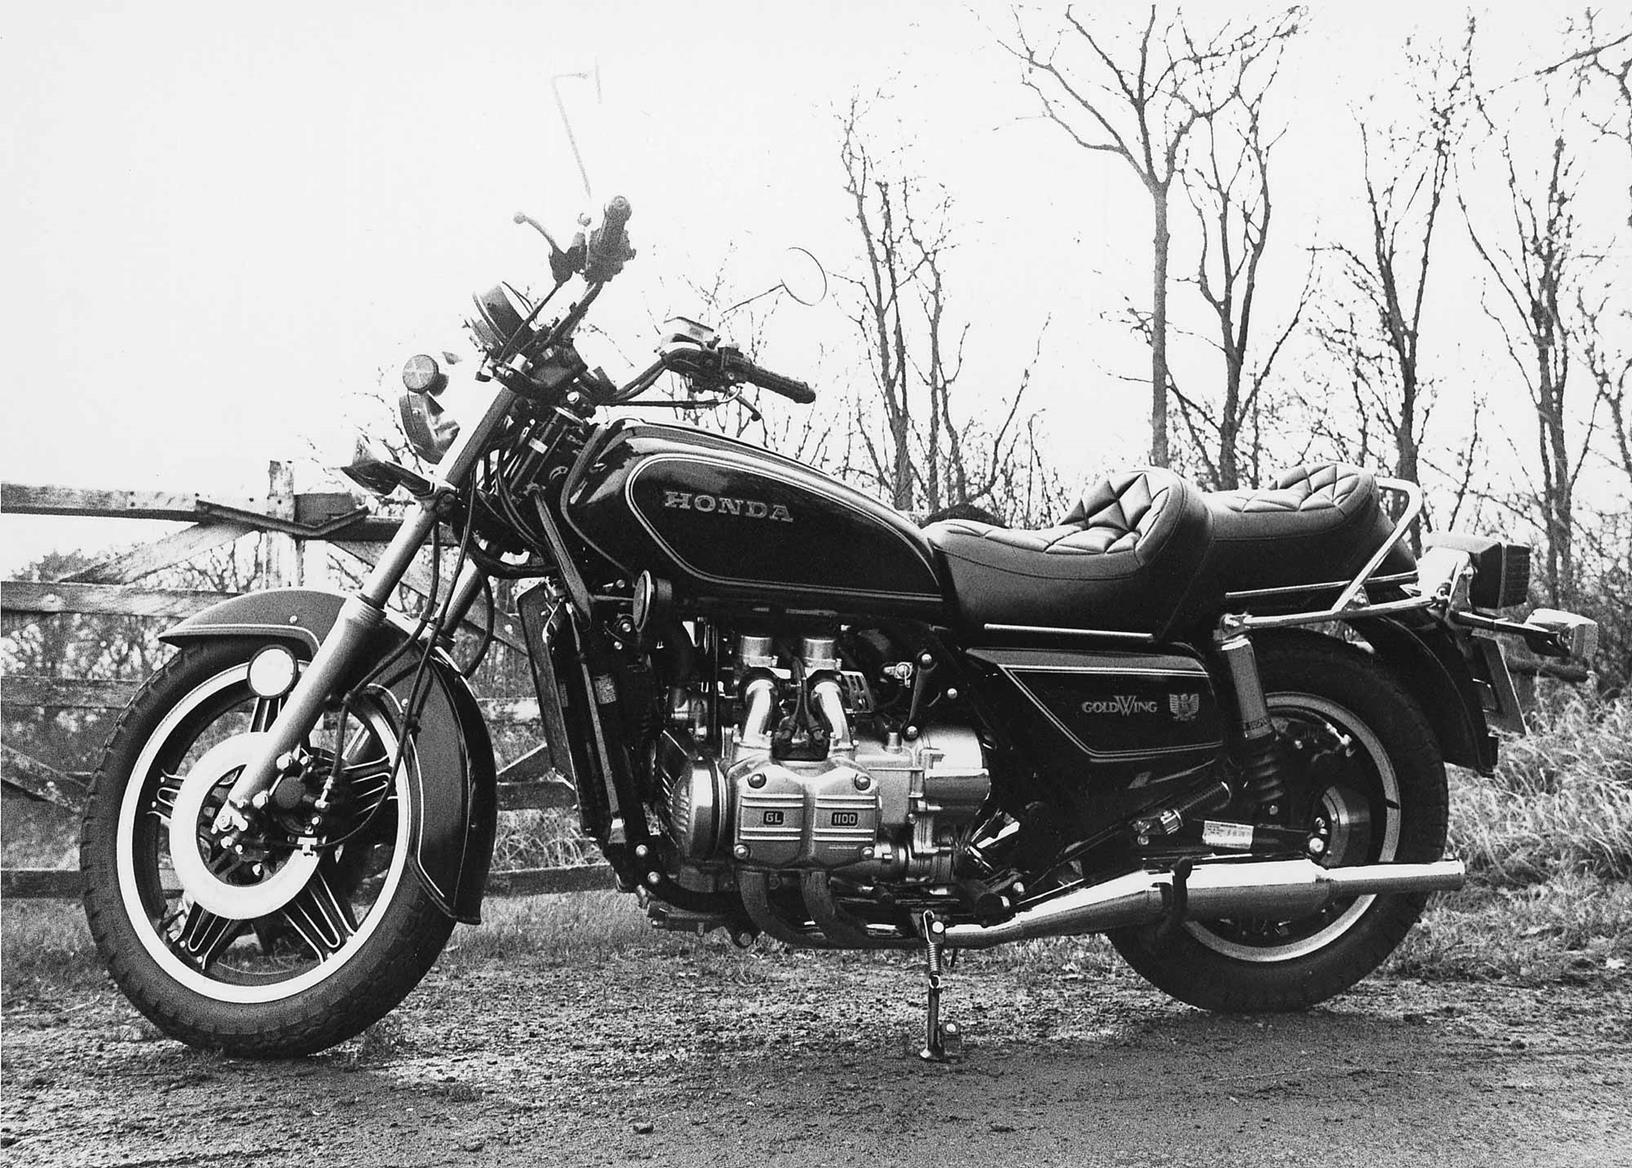 The GL1100 retained the naked design